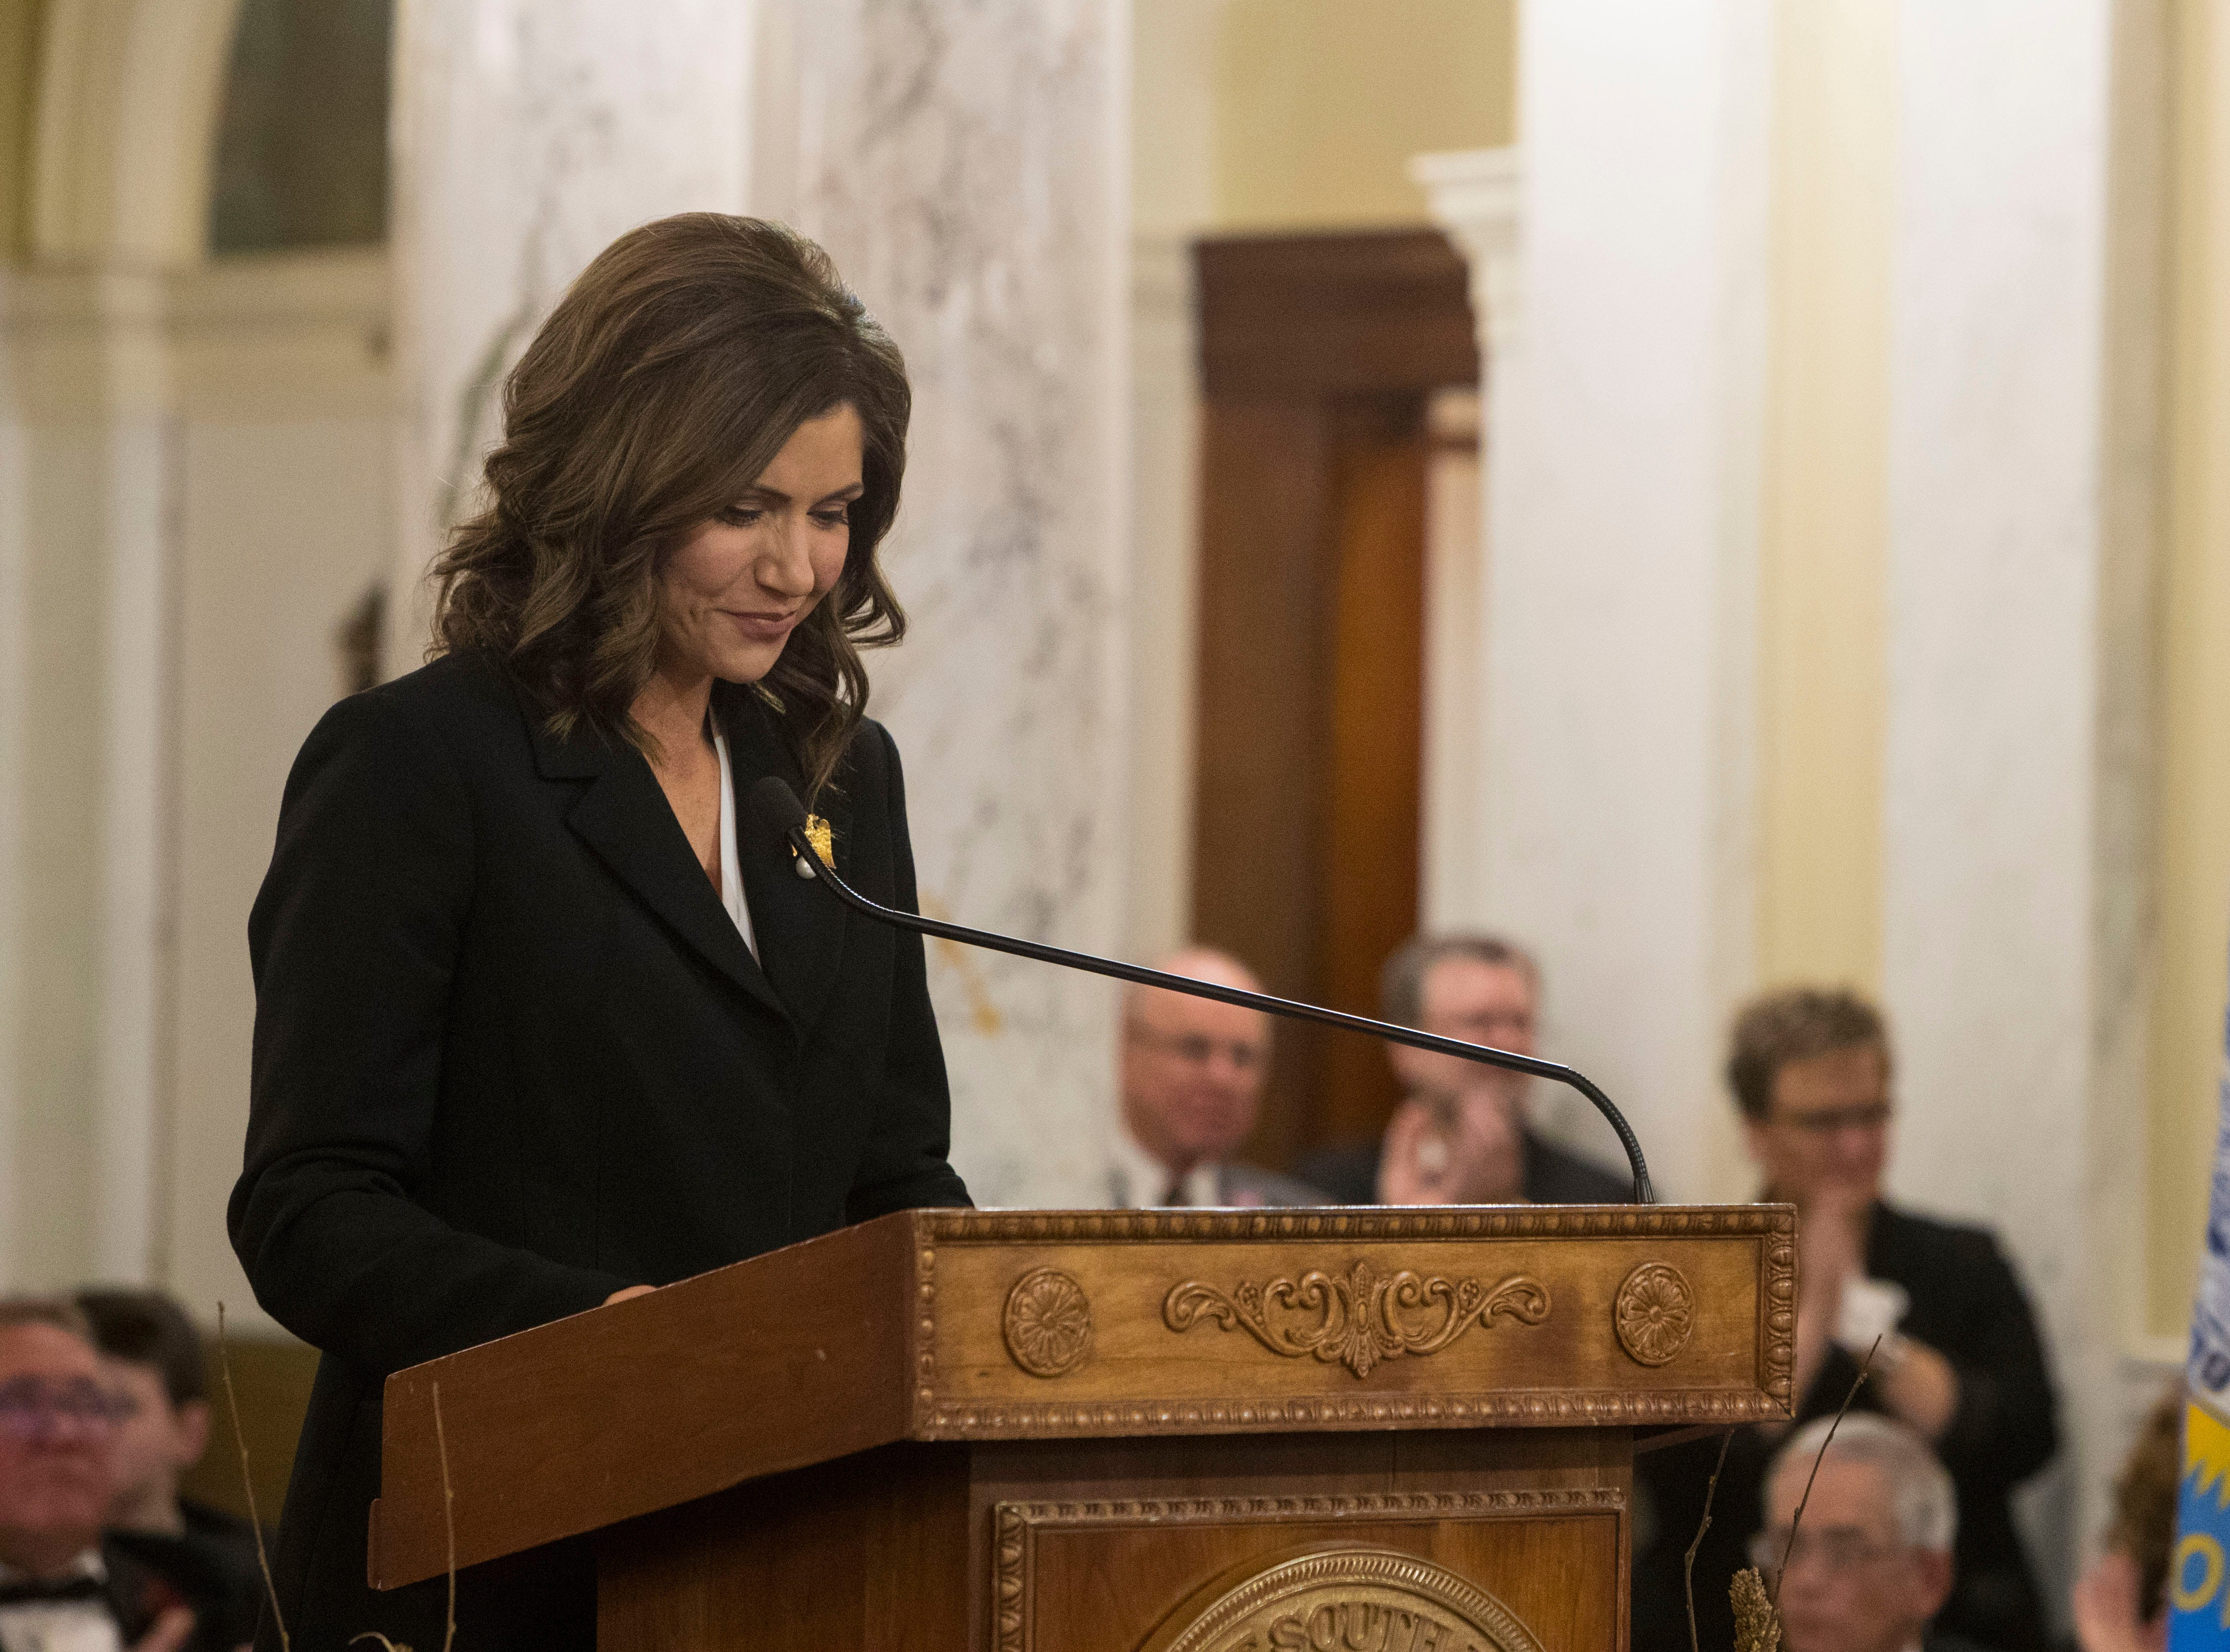 Gov. Kristi Noem reacts during her speech Saturday, Jan. 5, 2019, after being sworn-in as South DakotaÕs 33rd and first female governor in Pierre, S.D.